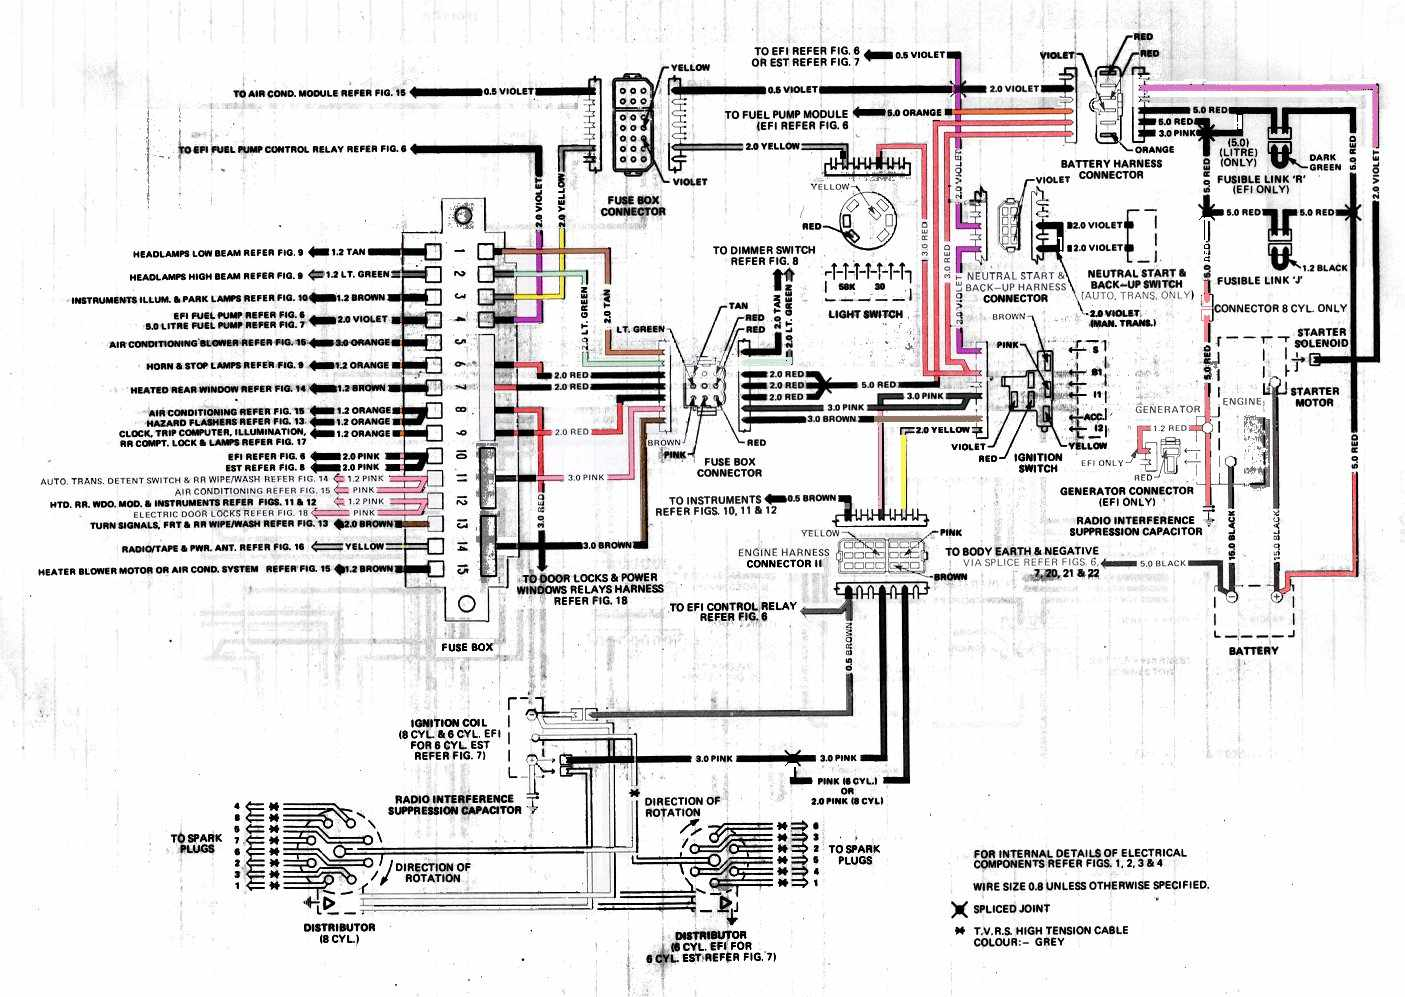 B2600i 4x4 1988 Mazda B2600 Wiring Diagram 91 Electrical And Electronic